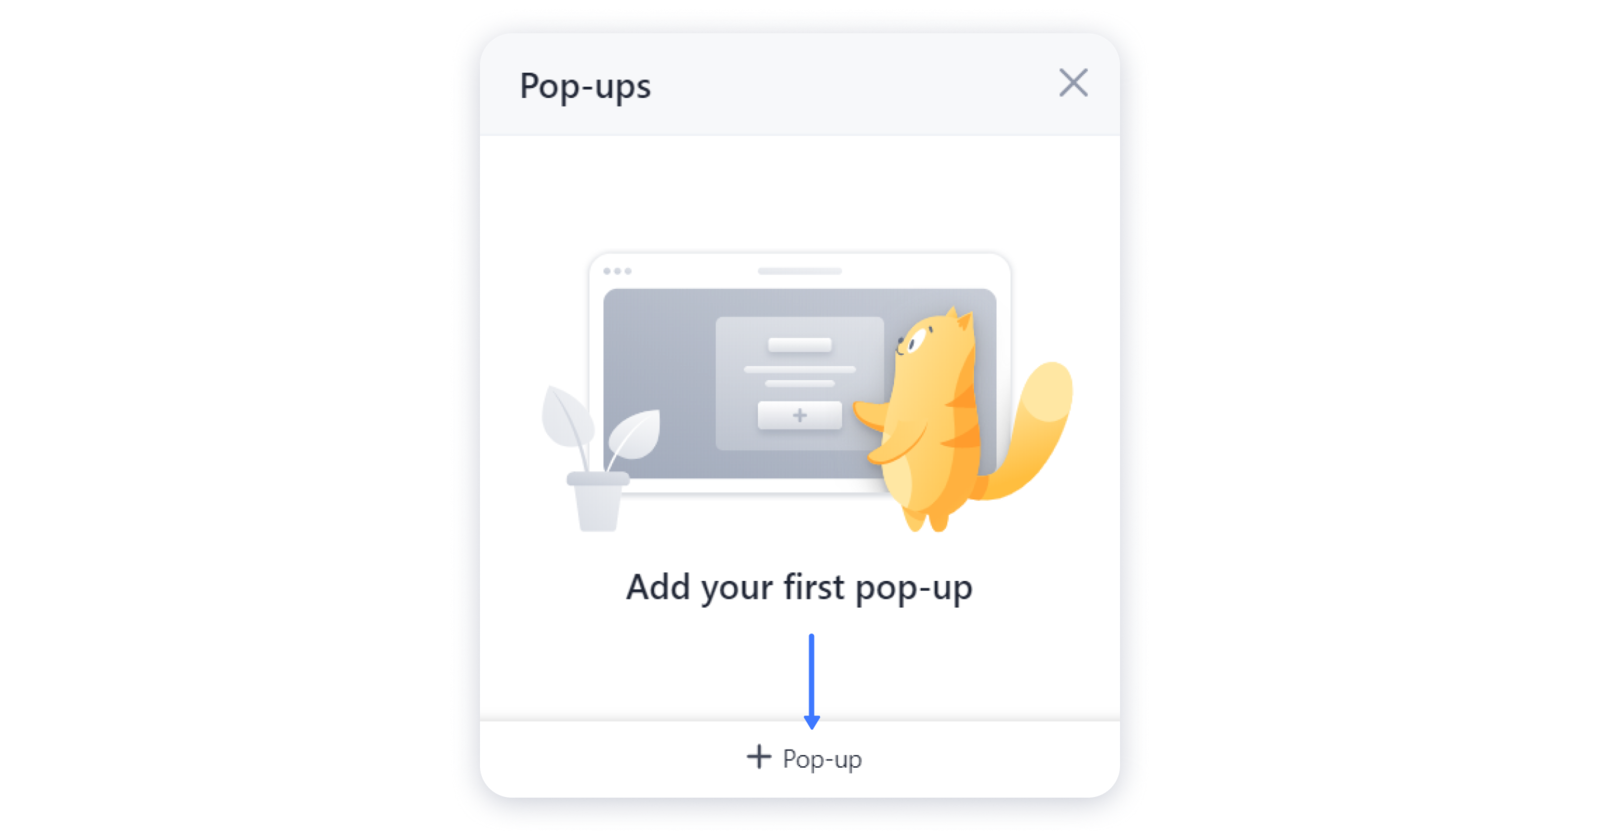 """Step 2. Click """"+ Pop-up"""" at the bottom of the menu."""